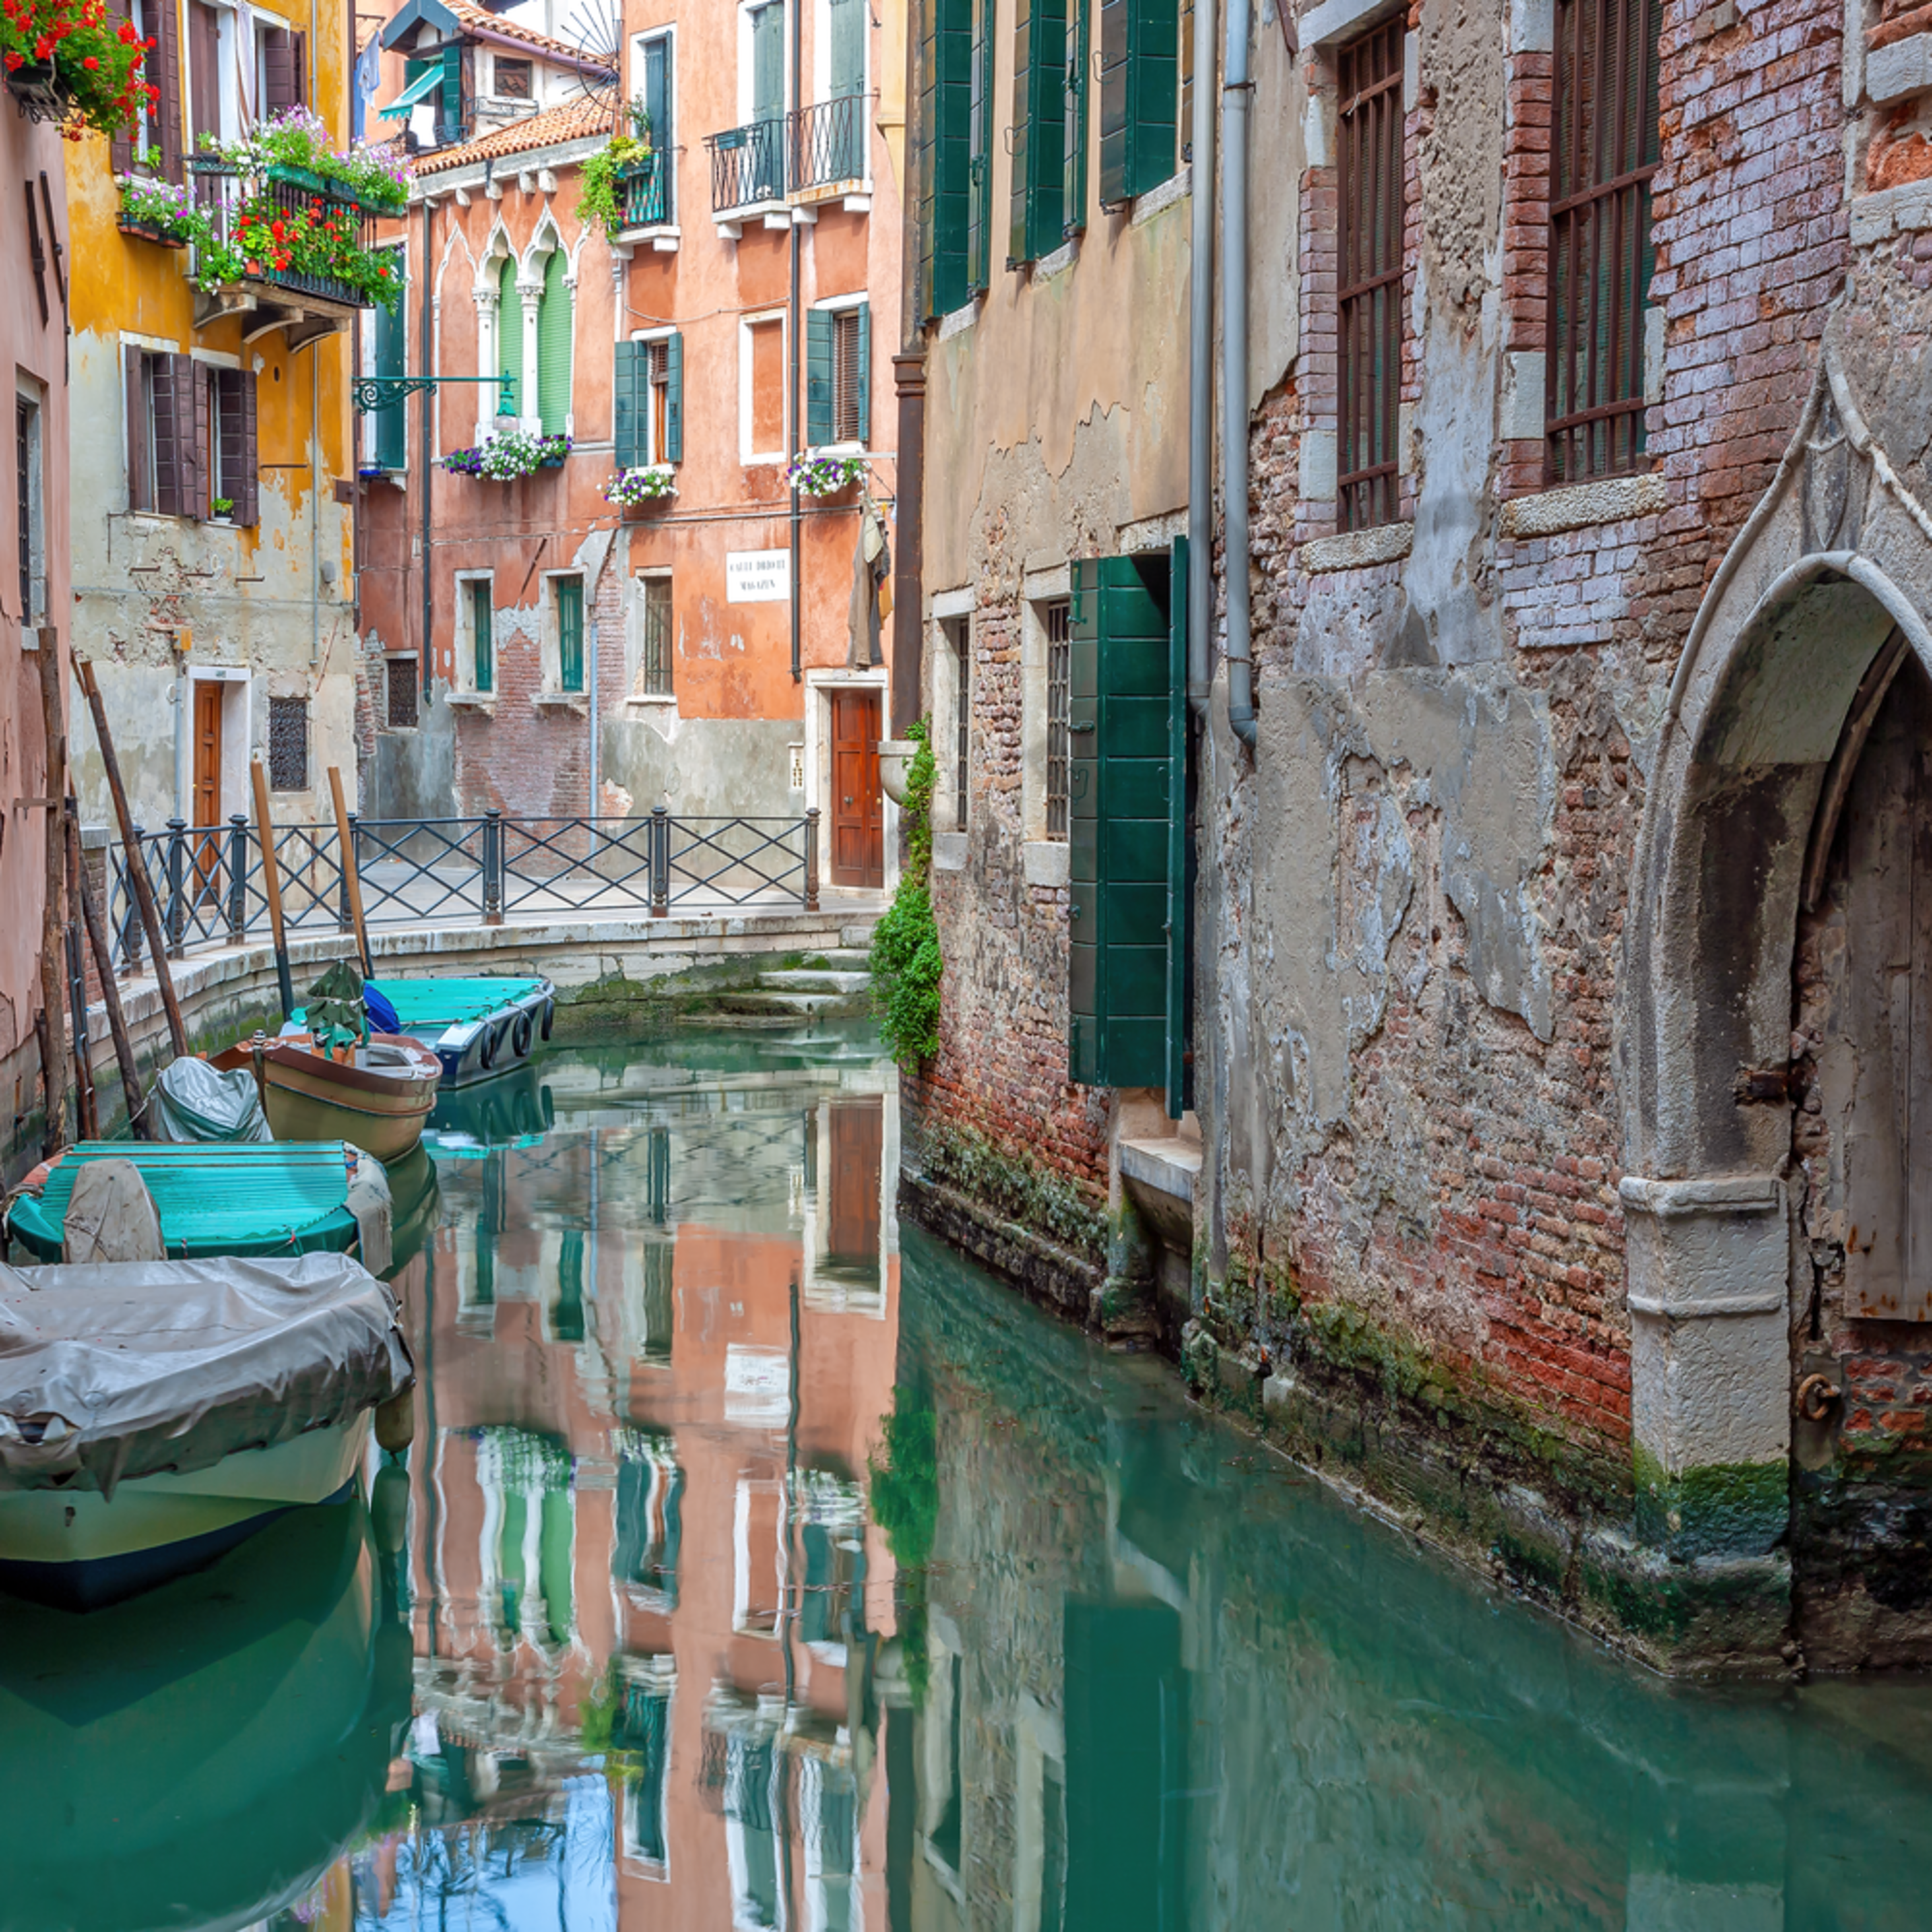 Venice and bend in canal italy pl8hs5